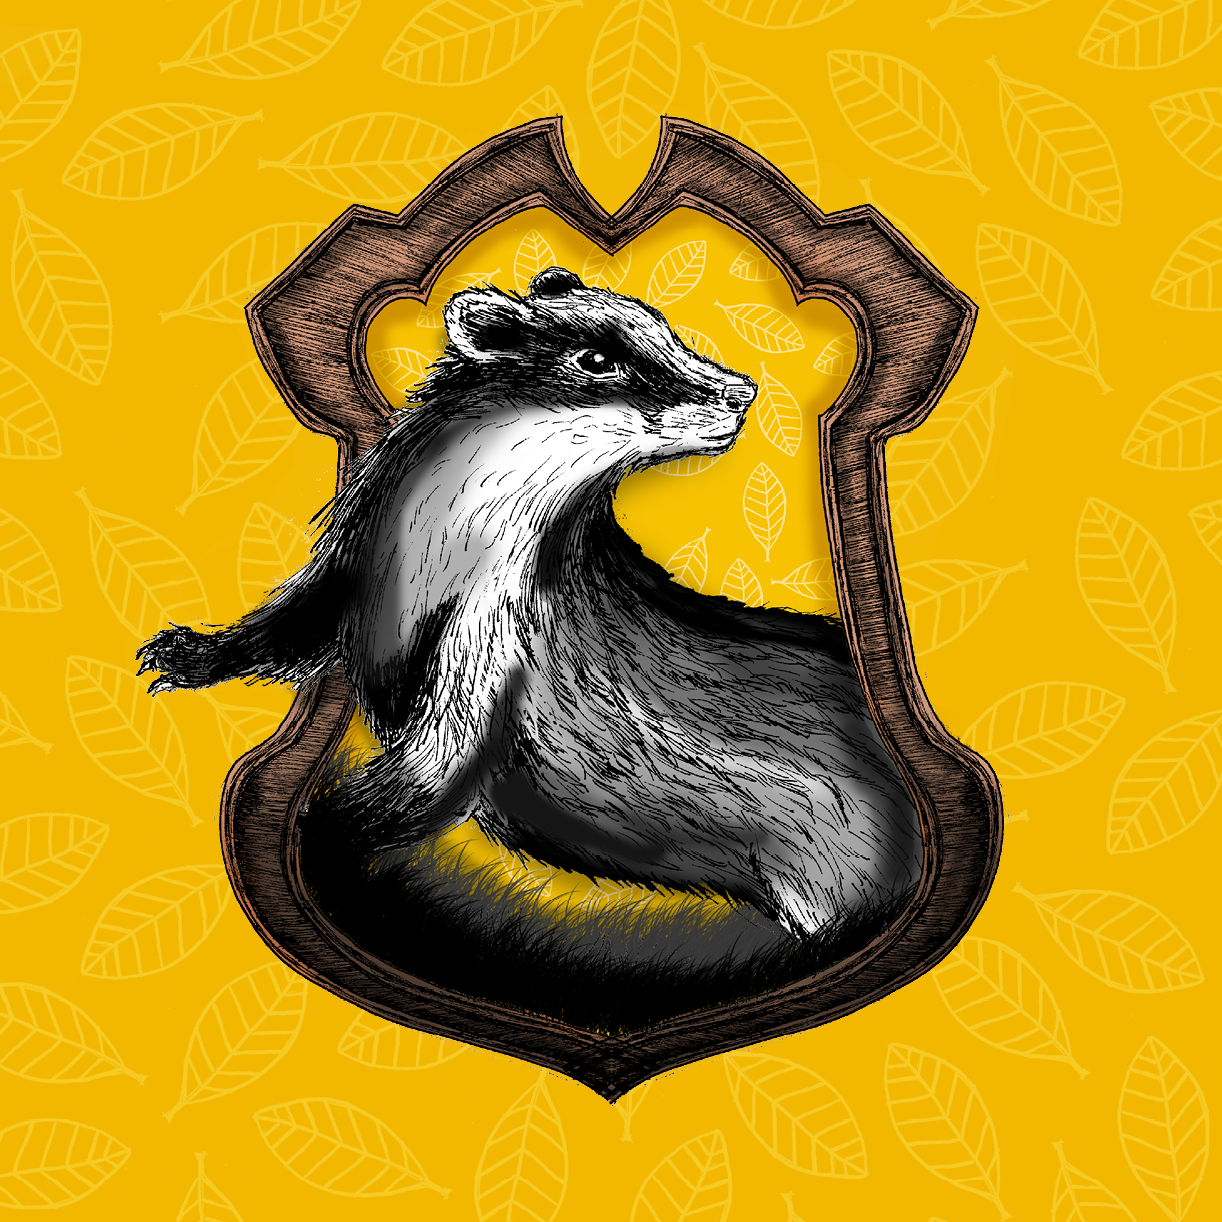 Pottermore Hufflepuff House Crest illustration